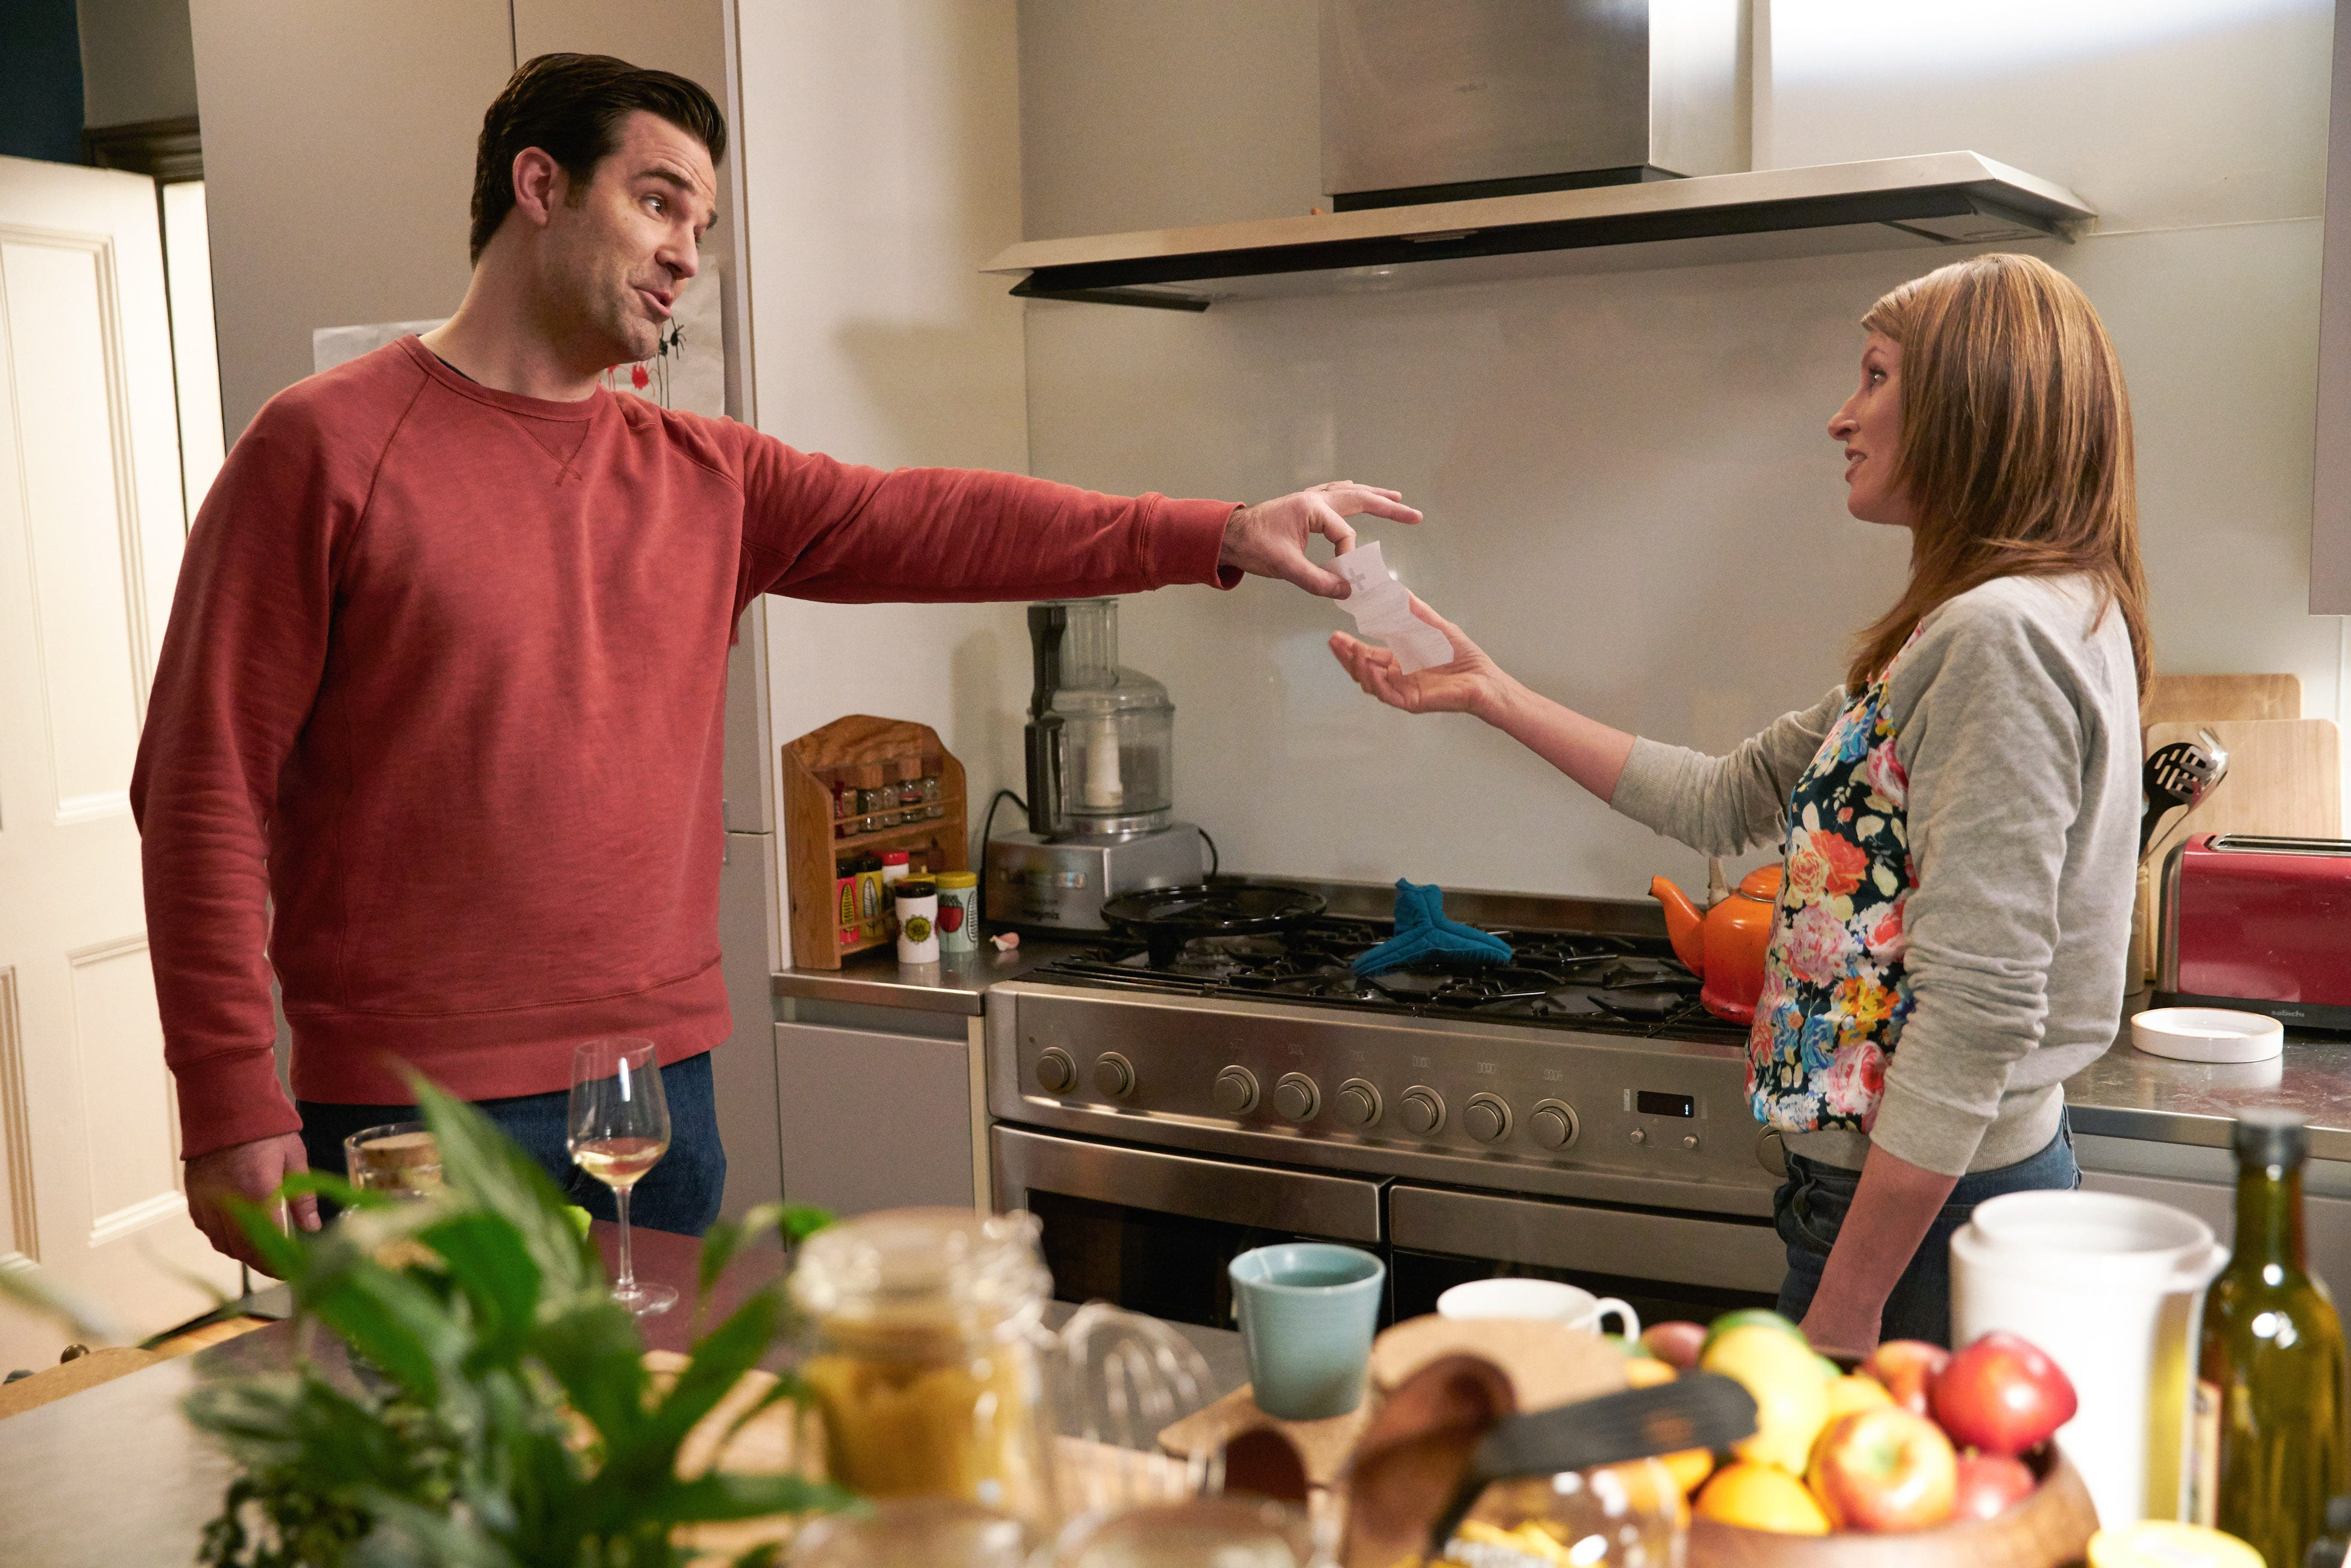 Q&A: Will Sharon and Rob survive Season 3 of Amazon's 'Catastrophe'?